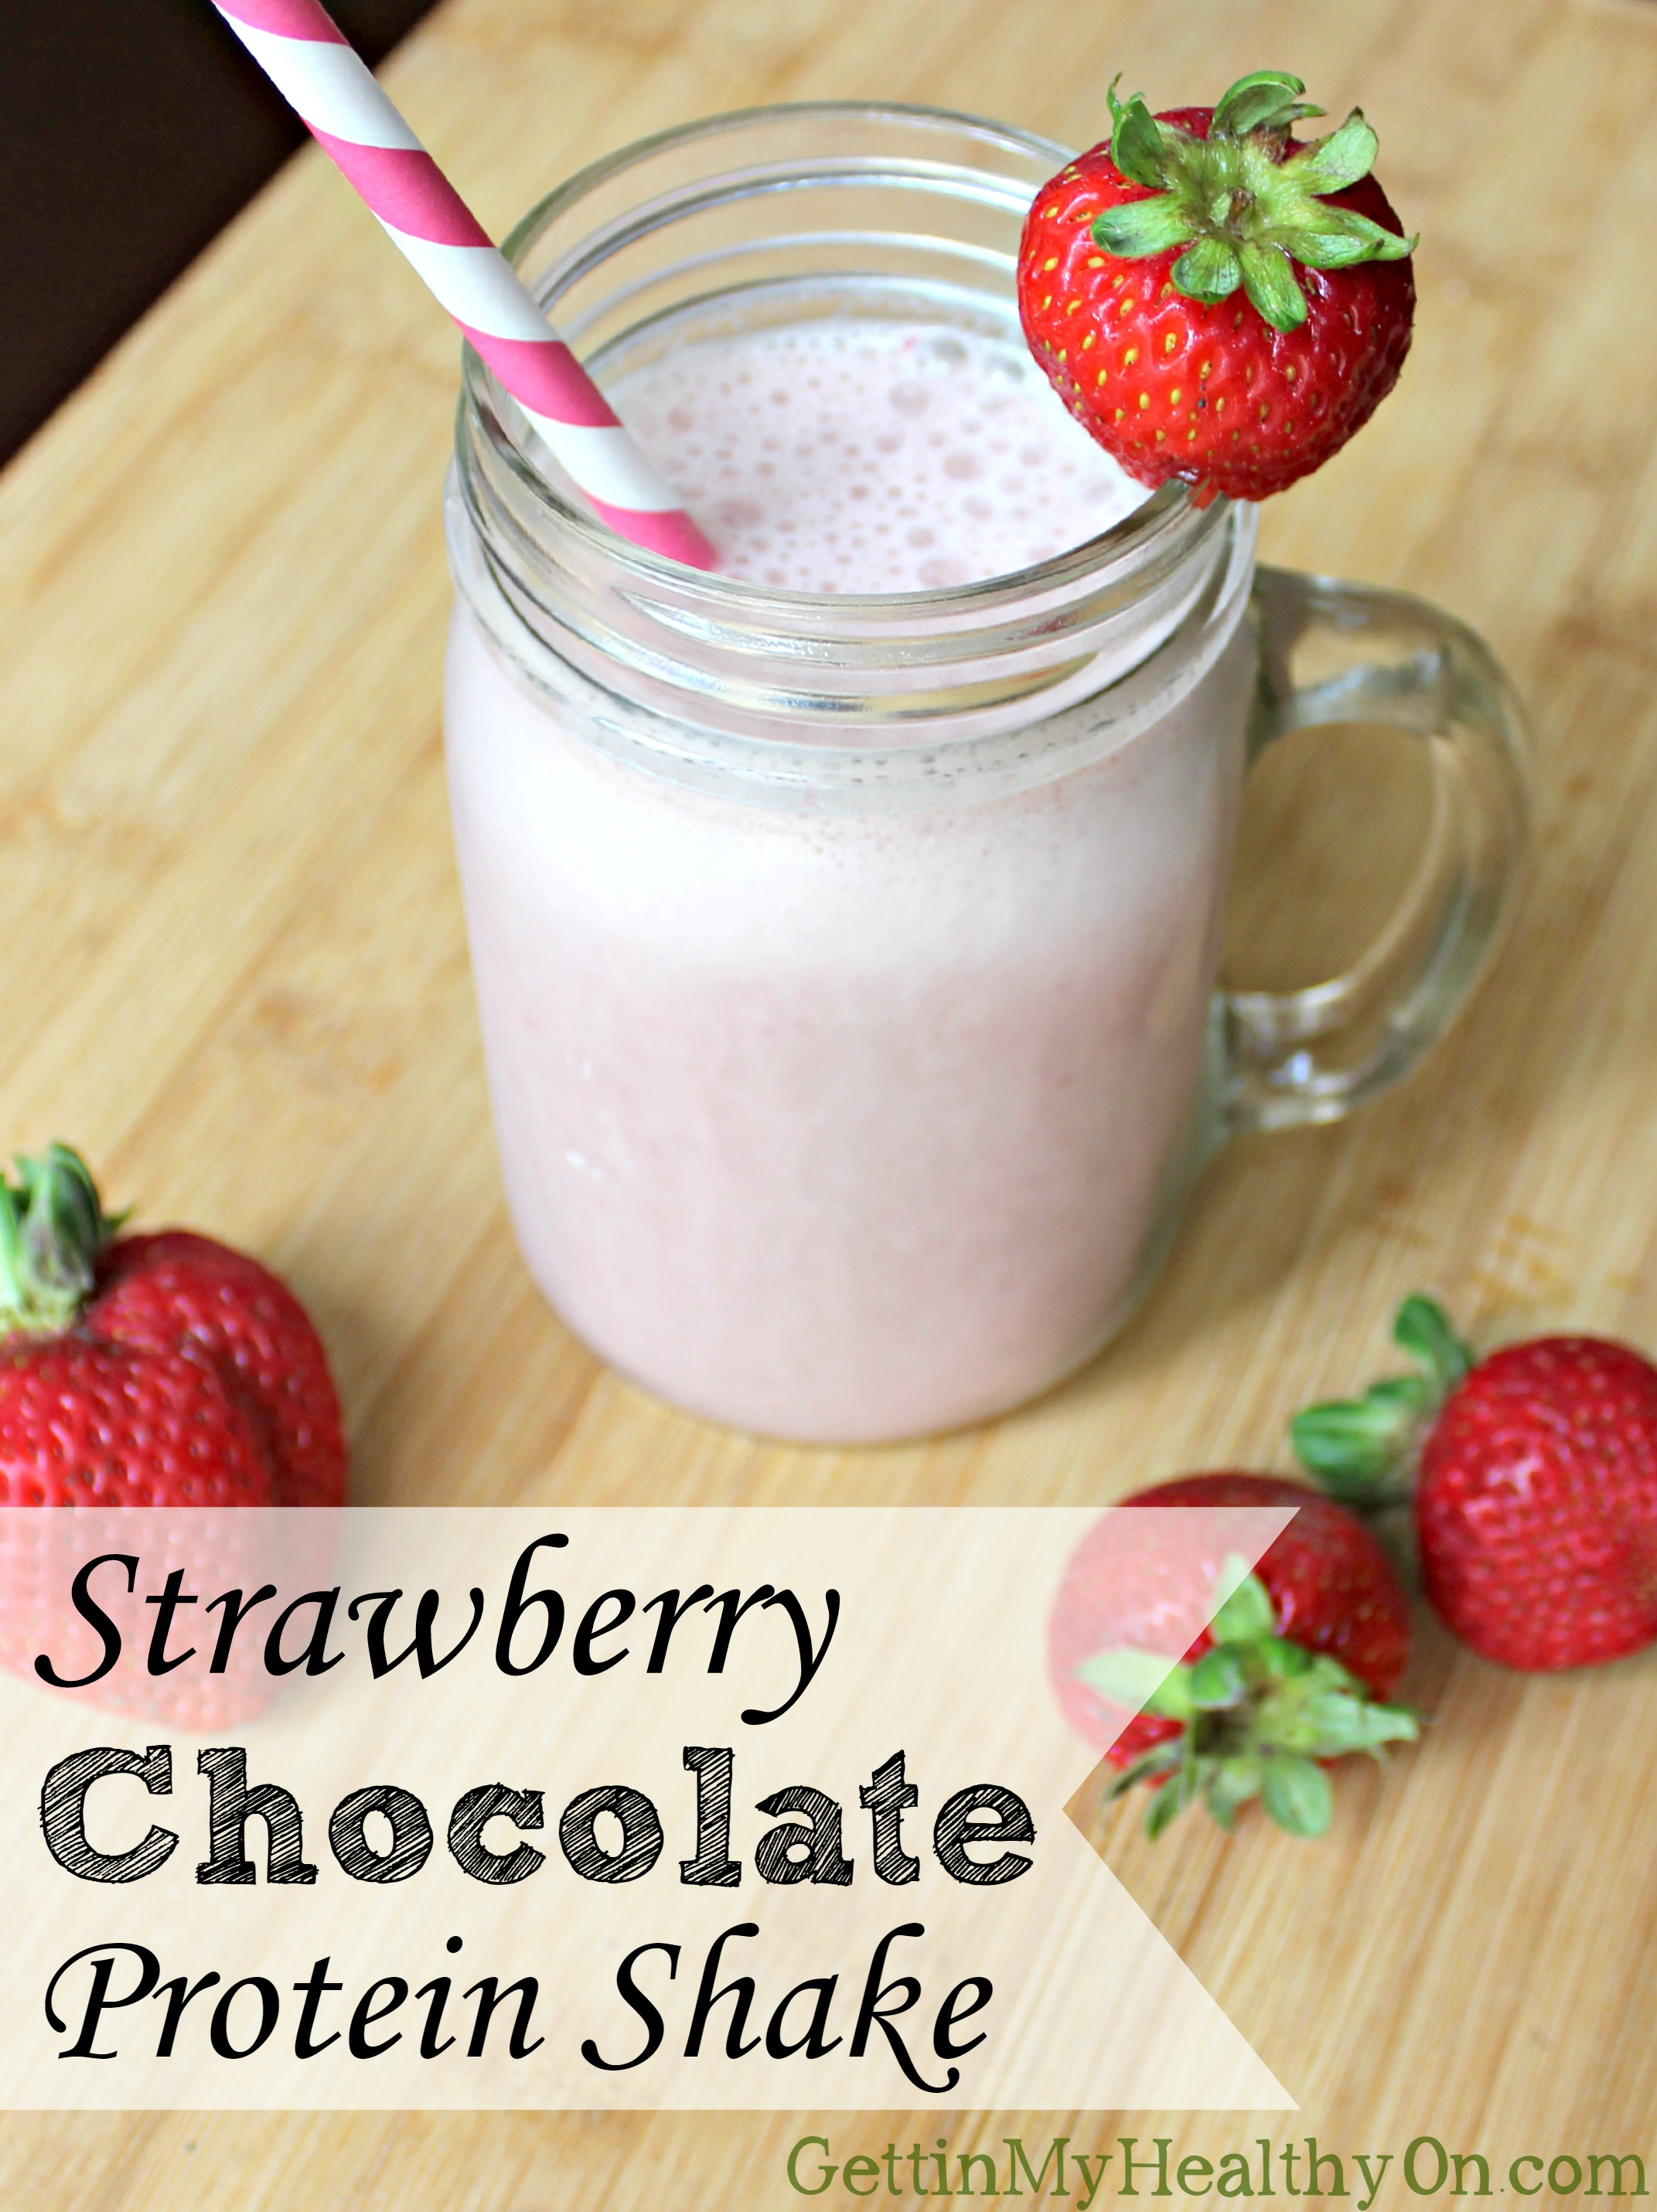 Strawberry Chocolate Protein Shake